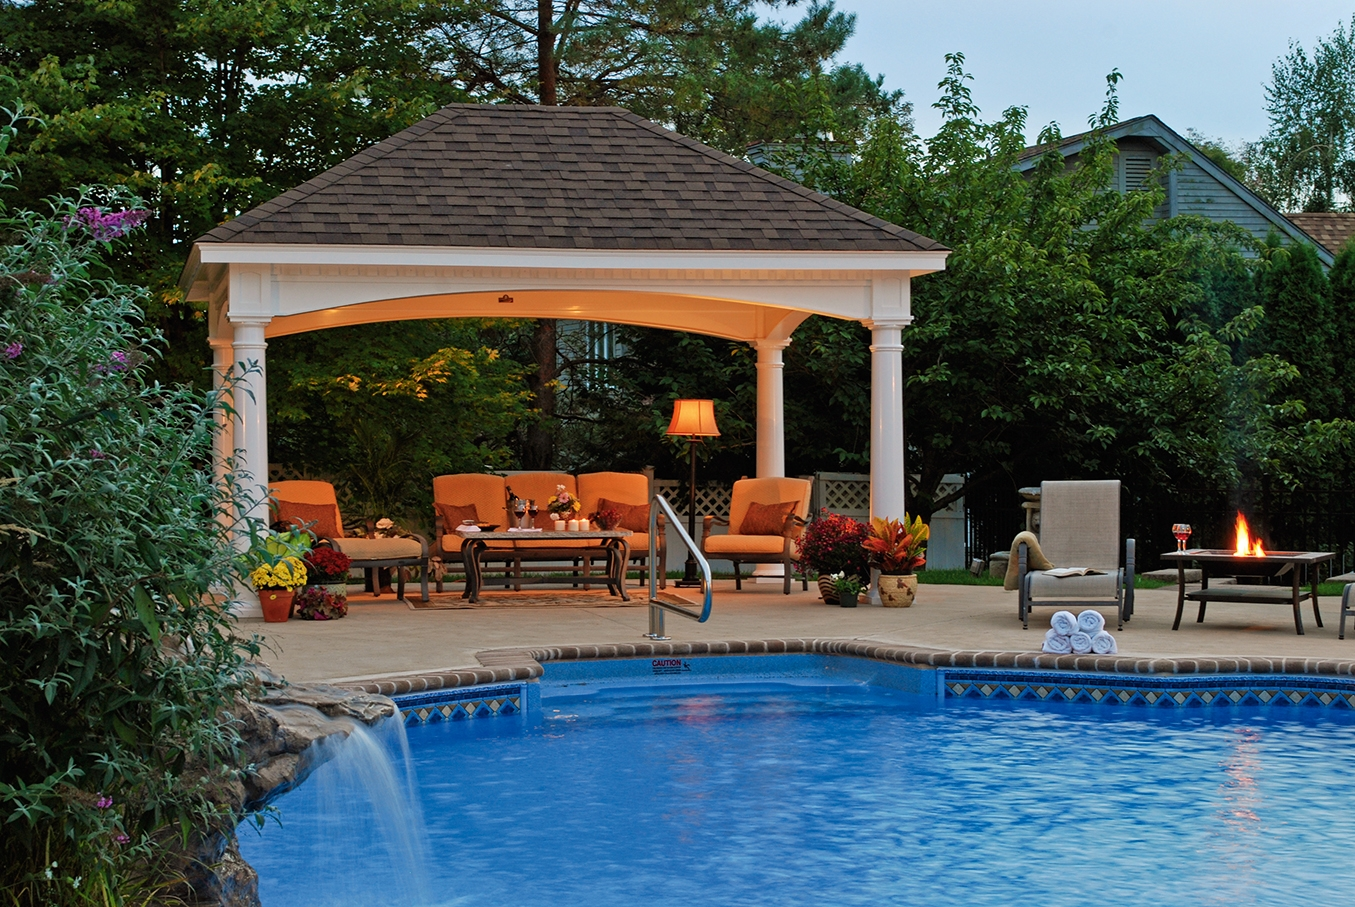 Outdoor pavilion plans that offer a pleasant relaxing time for Pool design blueprints